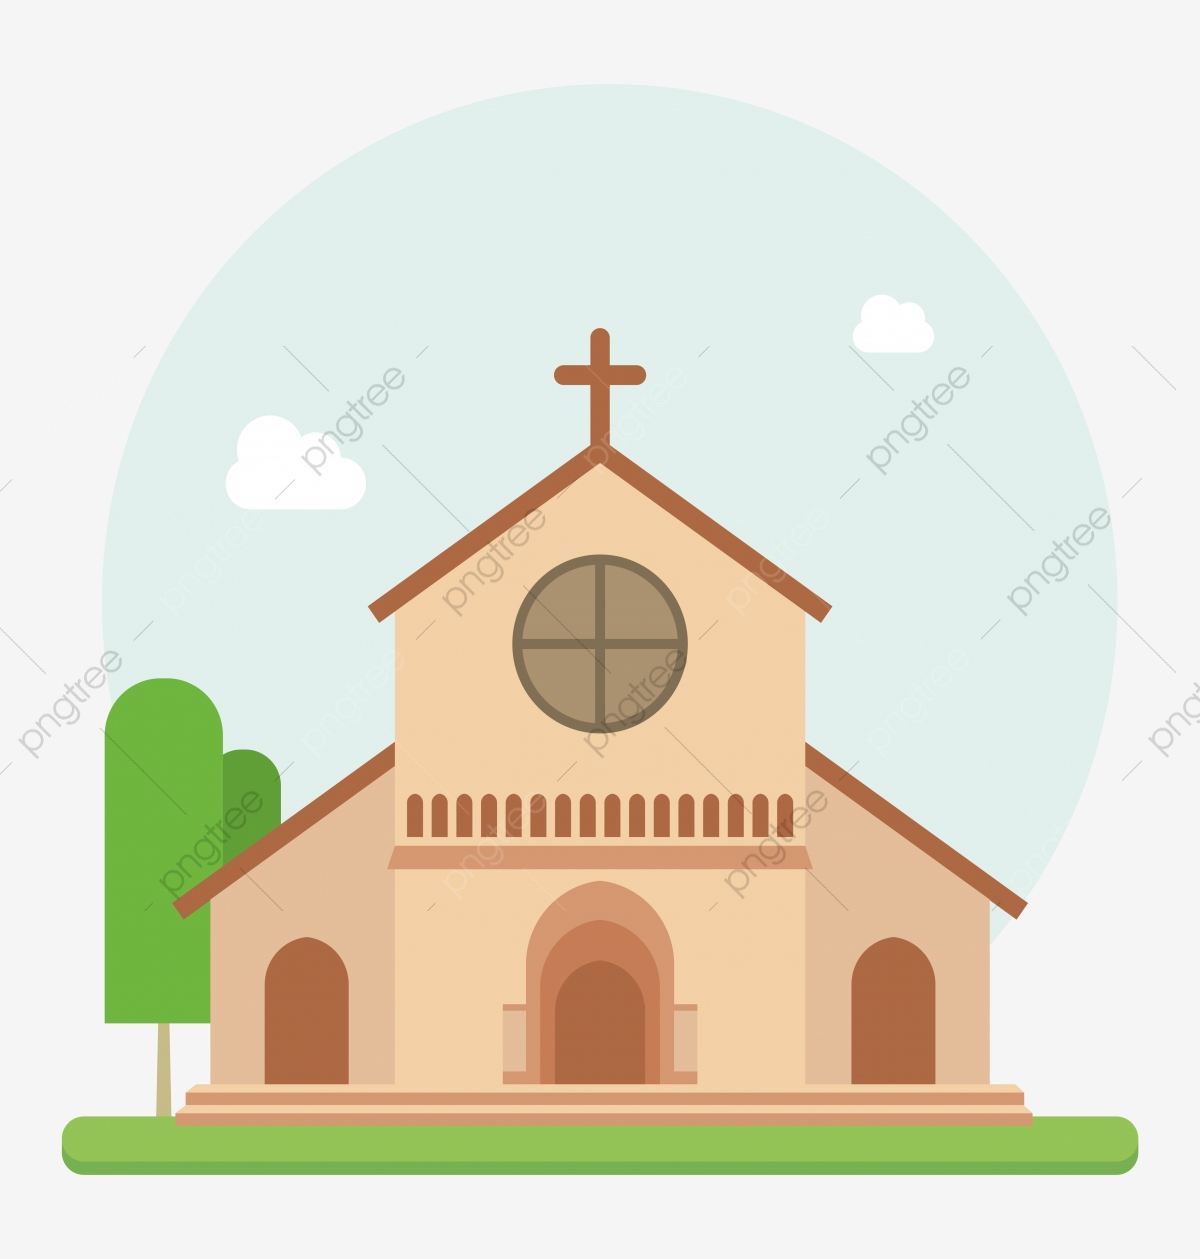 Christian Church Flat Vector, Religious, Christianity, Church PNG.